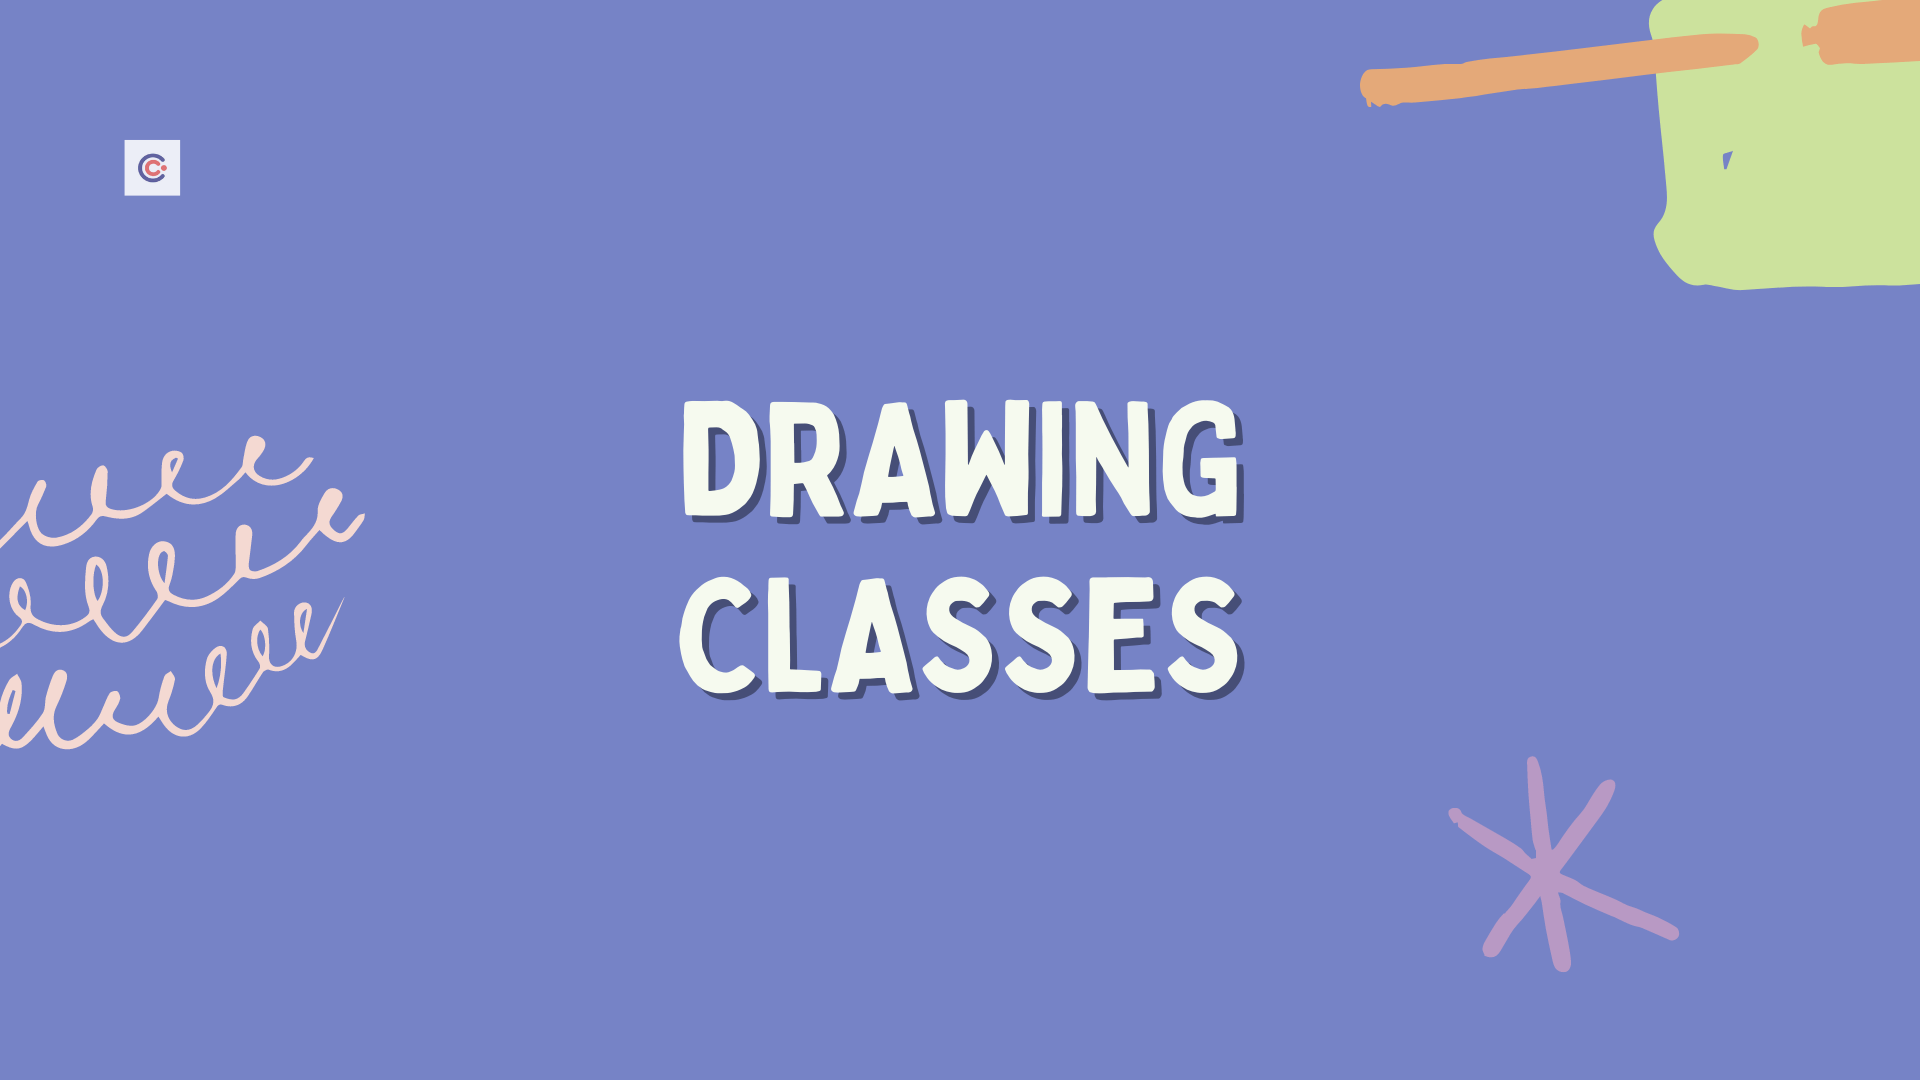 5 Best Drawing Classes and Courses - Learn Drawing Online